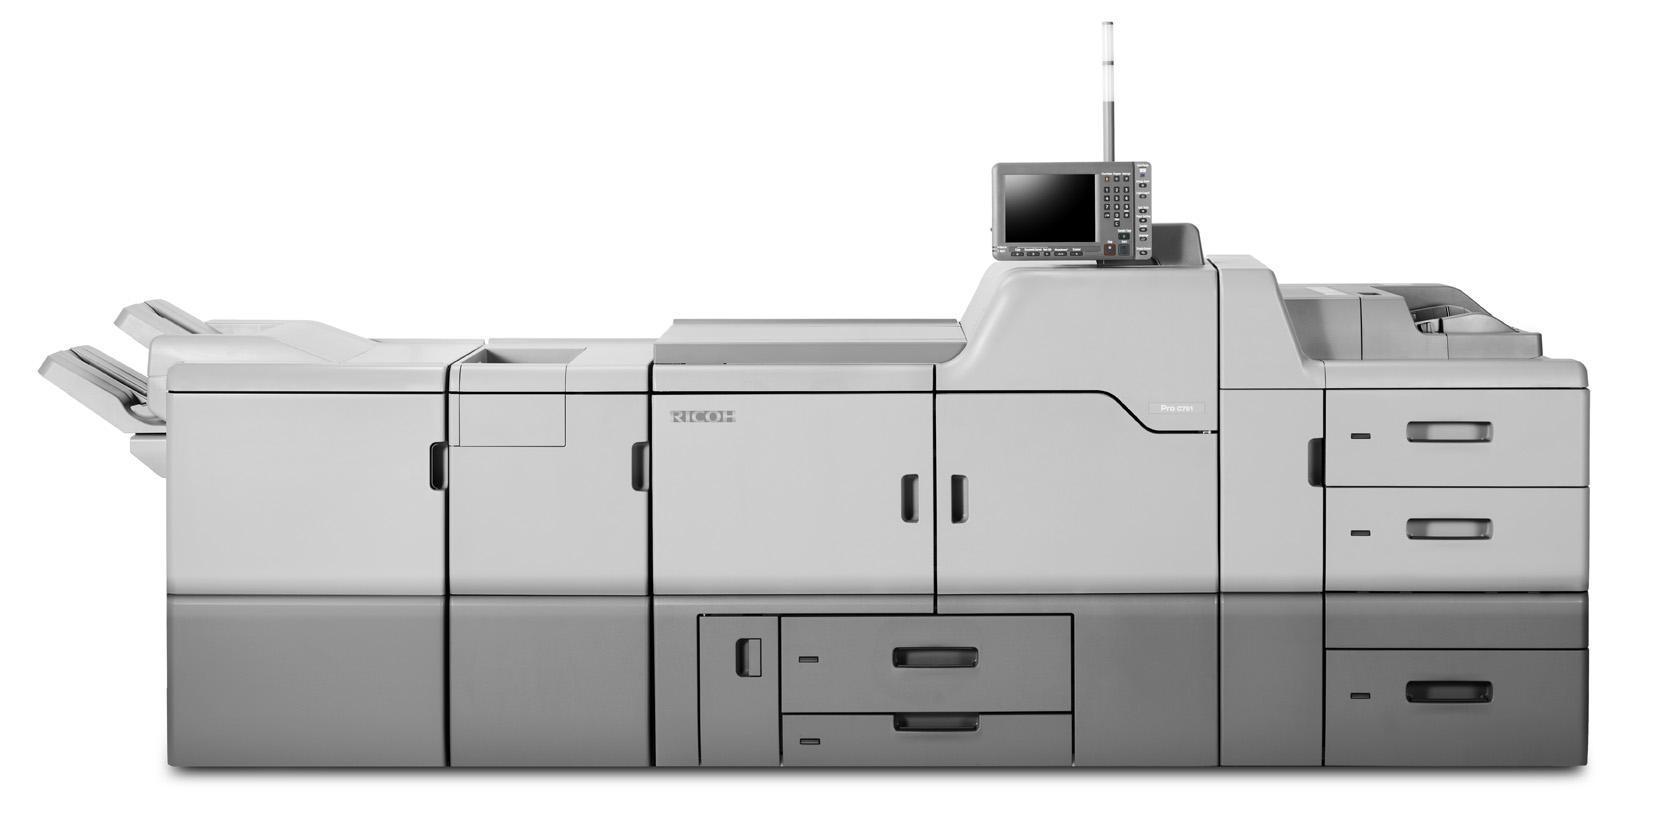 Digital Printing vs. Offset Printing: From the Desk of Mike Donnelly-1